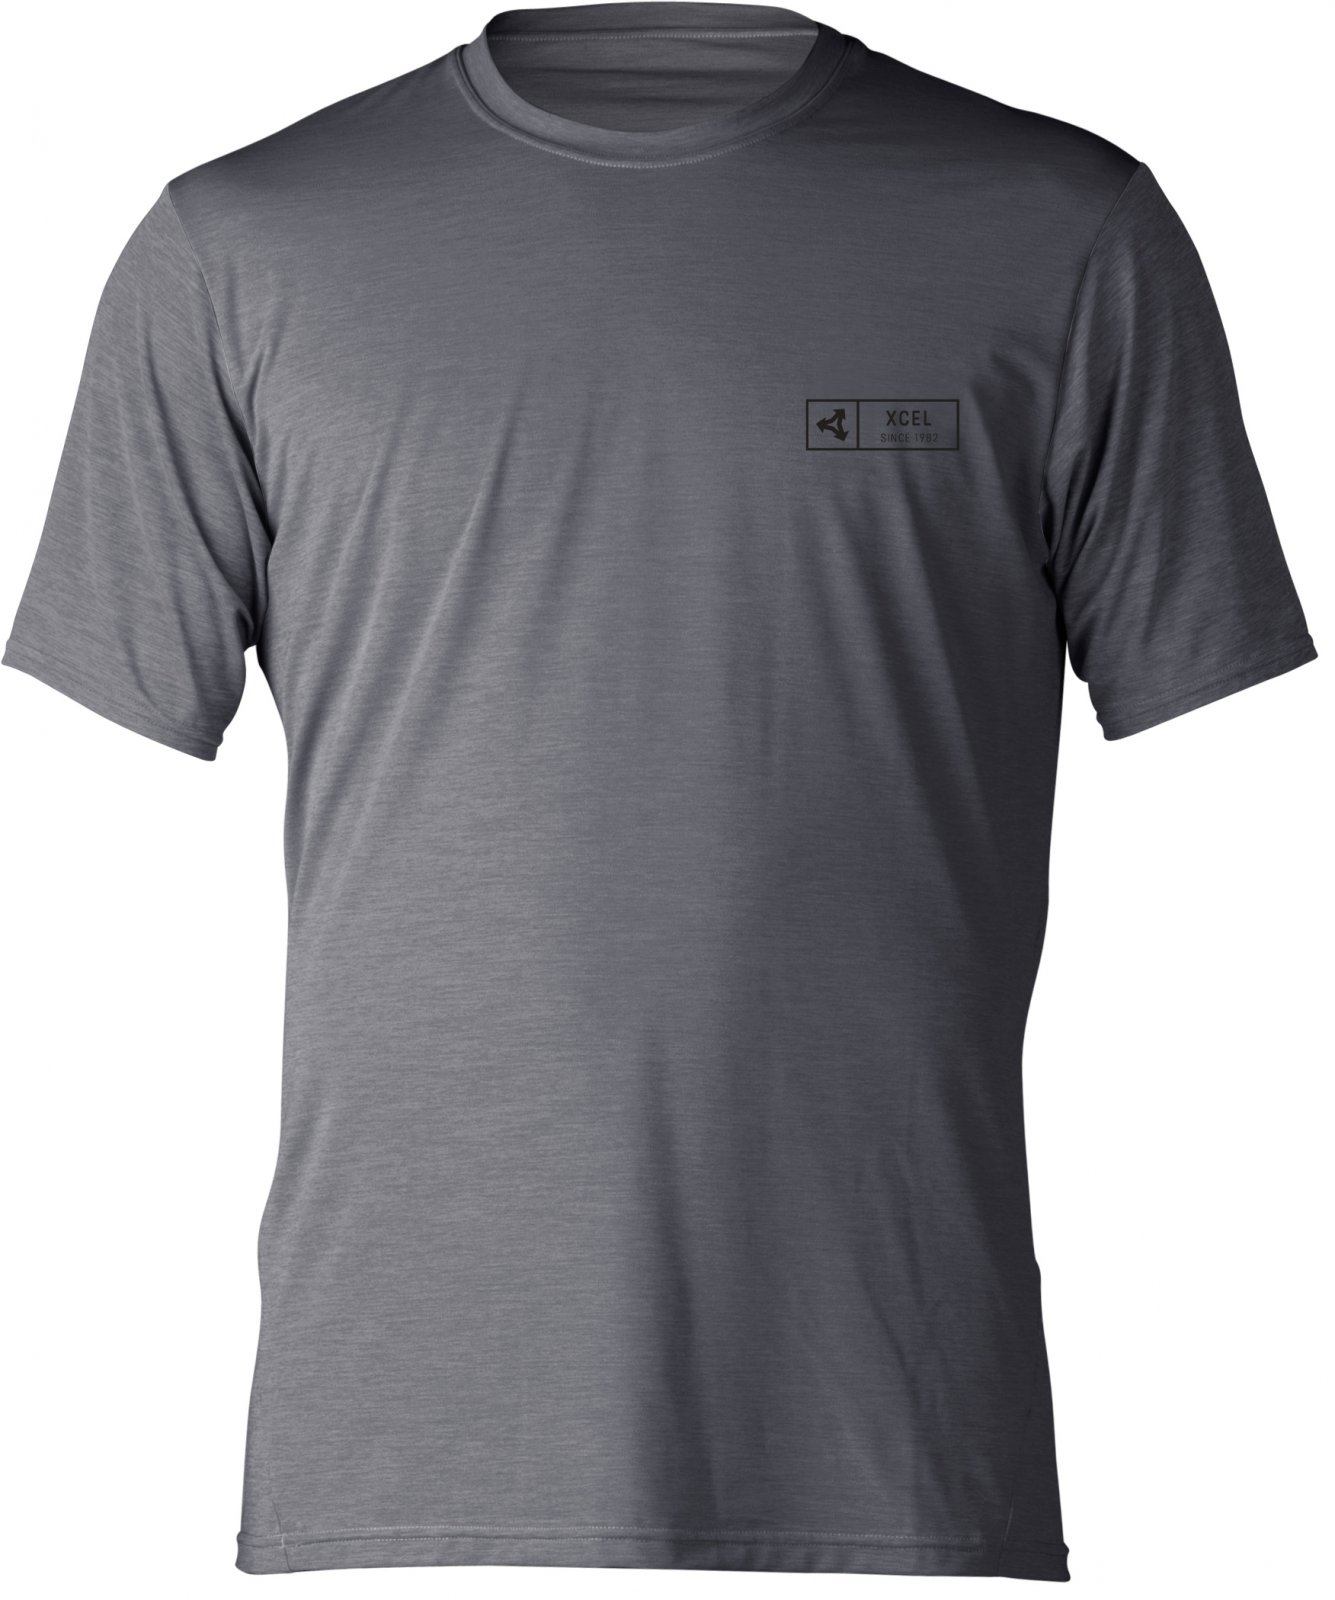 Xcel Pacific S/S Heather Alloy - M